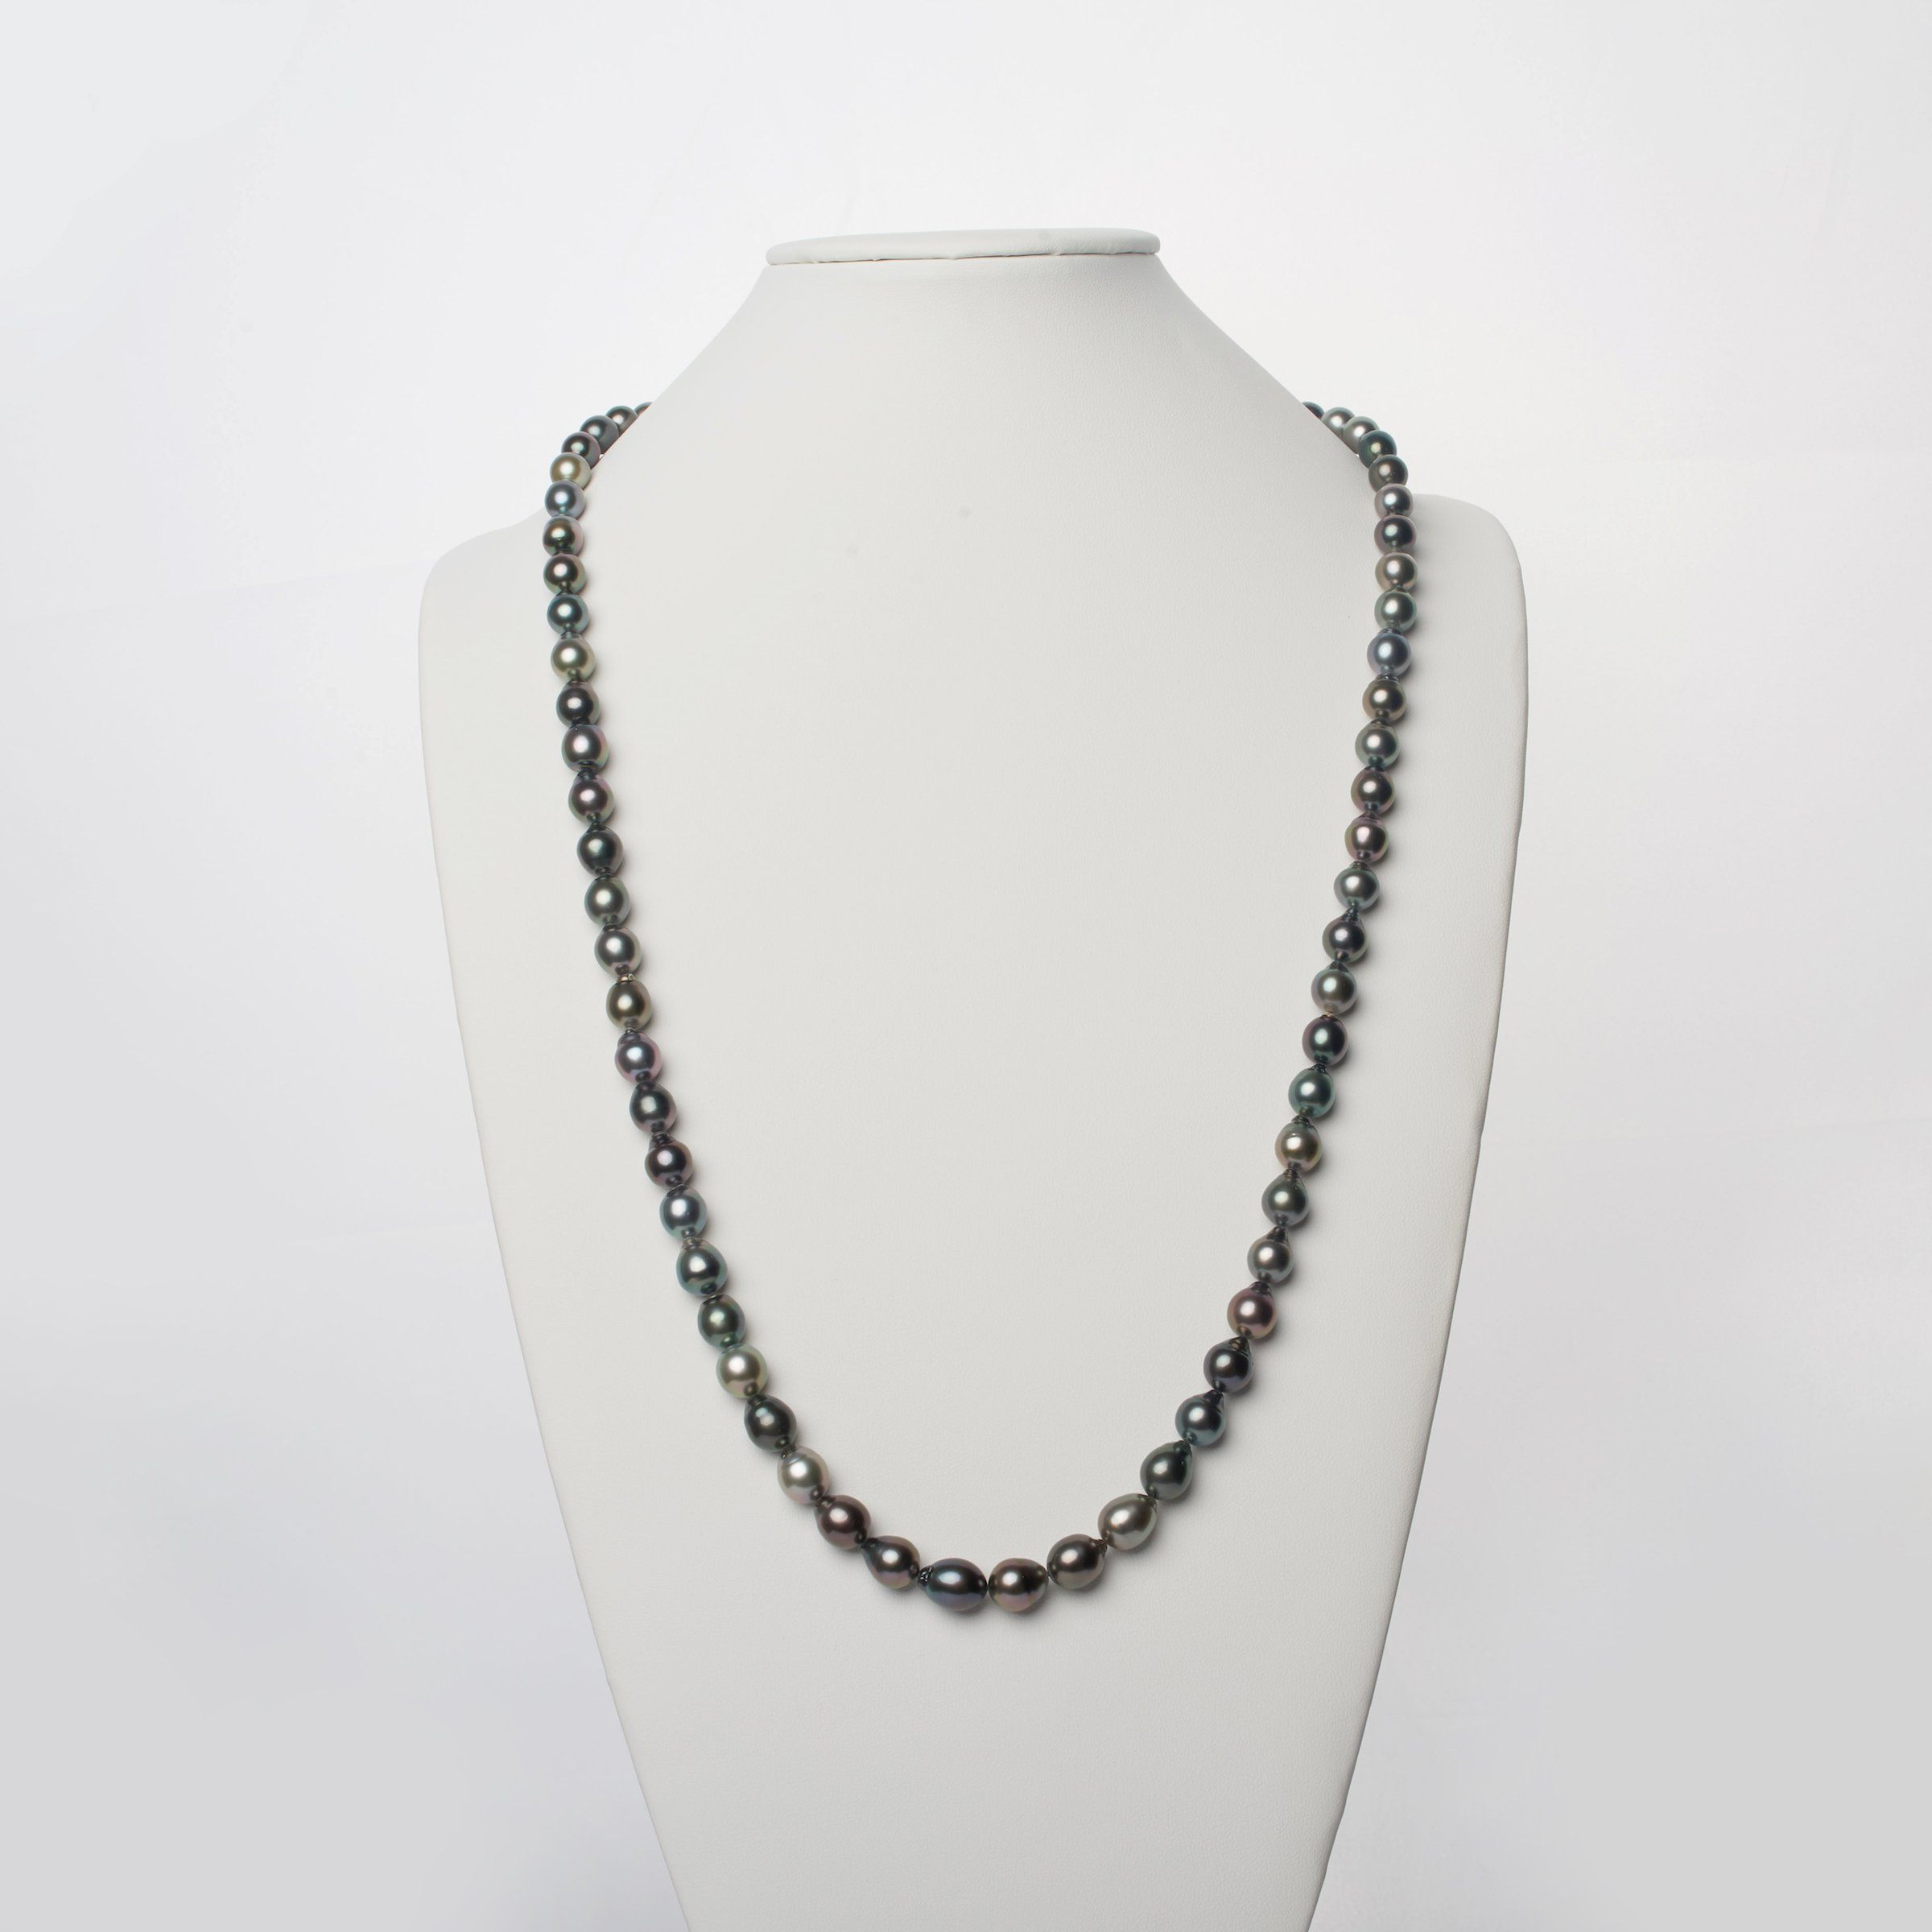 8.6-10.4 mm AAA Tahitian Drop Pearl Necklace - 35 Inches